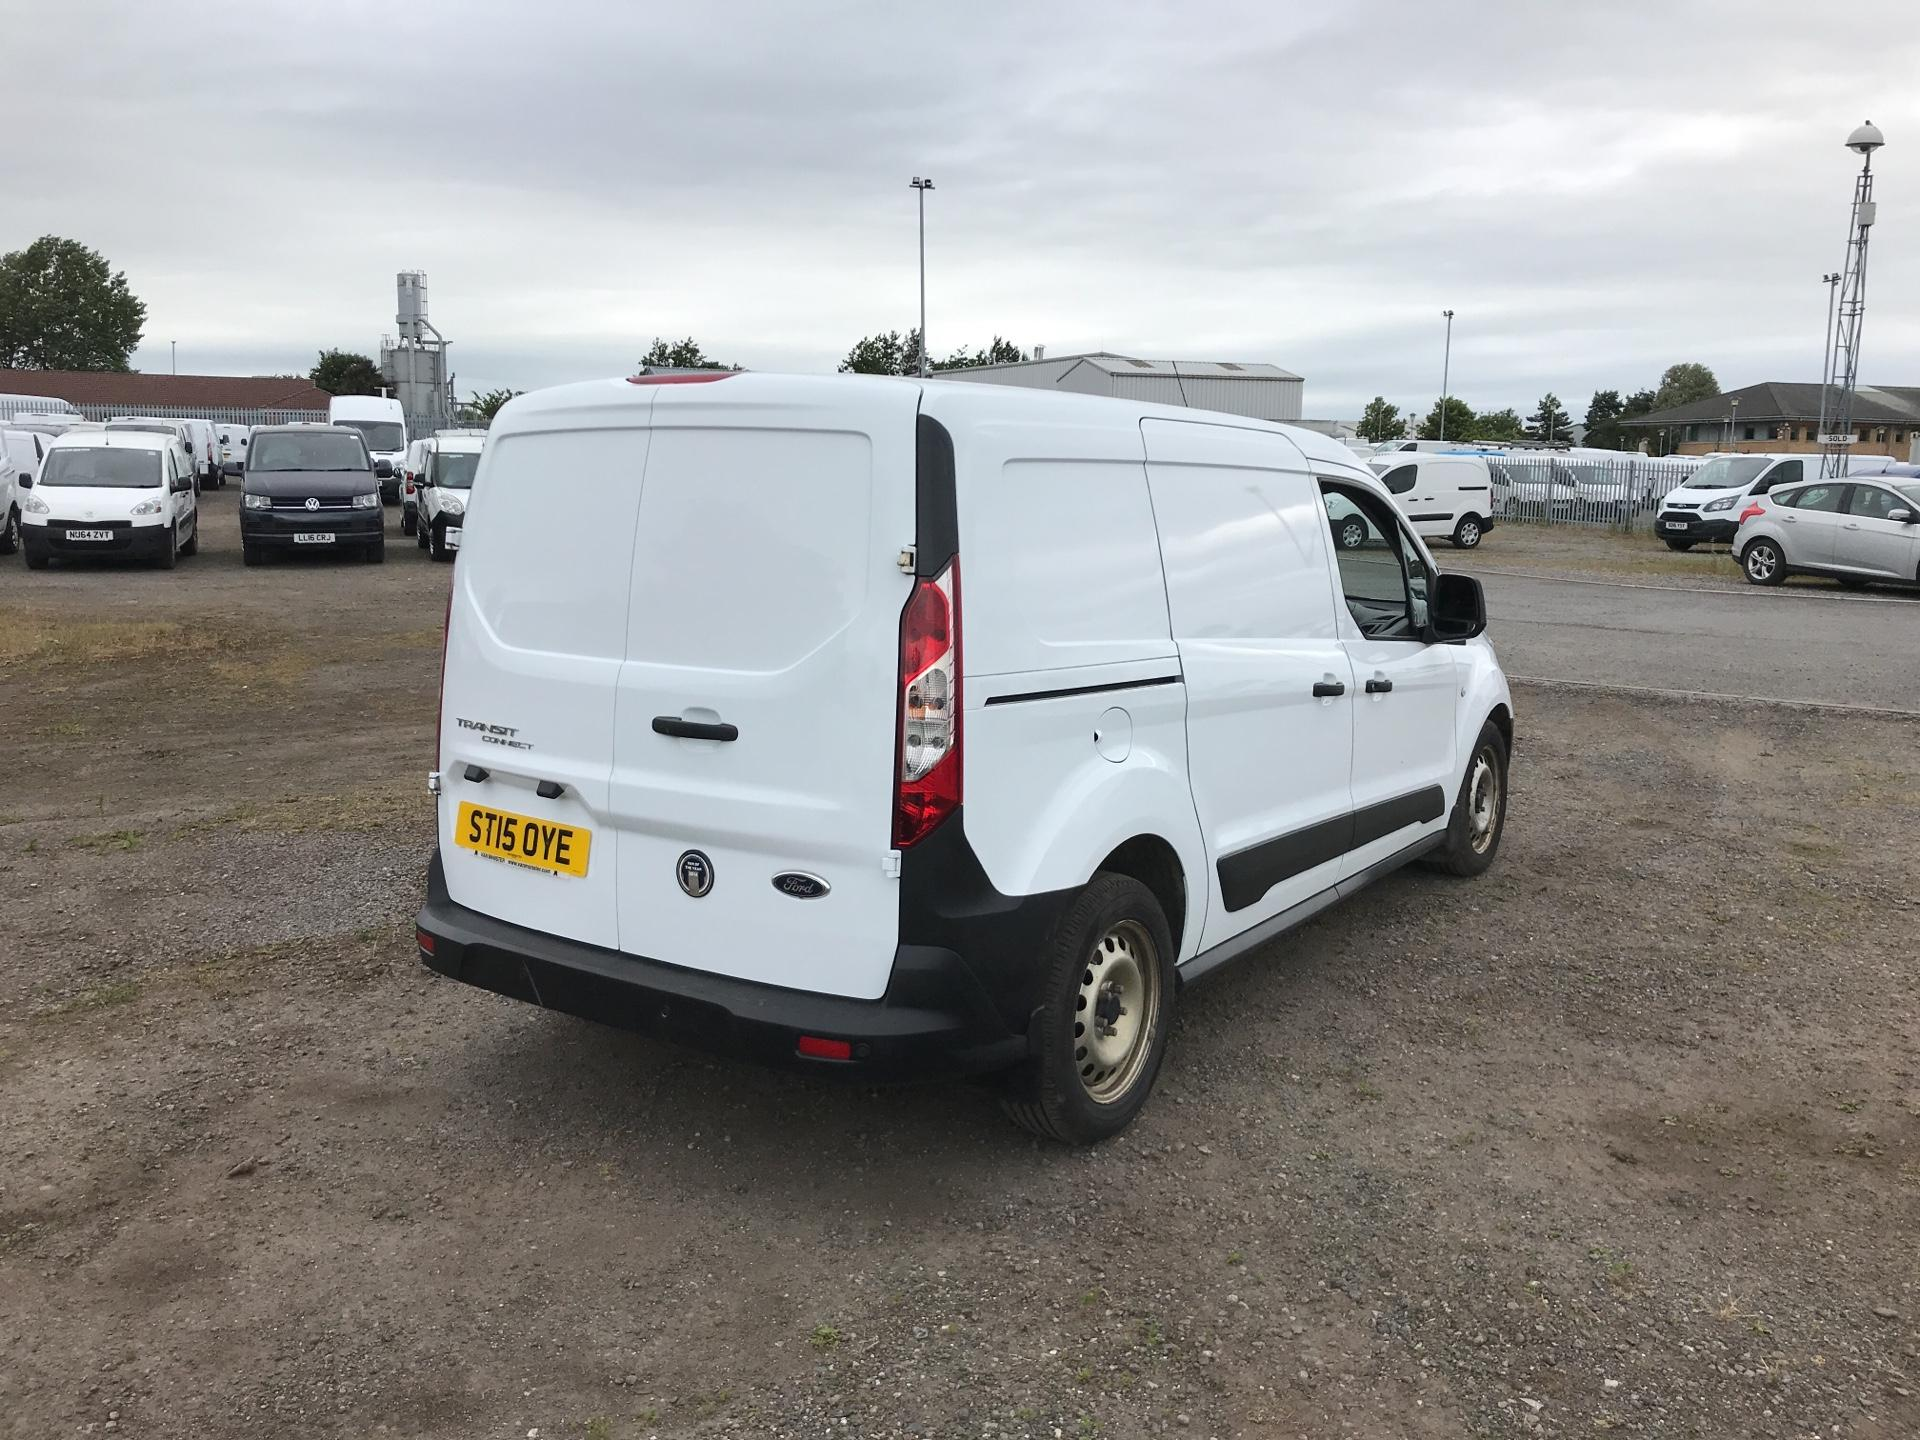 2015 Ford Transit Connect 1.6 Tdci 95Ps D/Cab Van (ST15OYE) Image 3